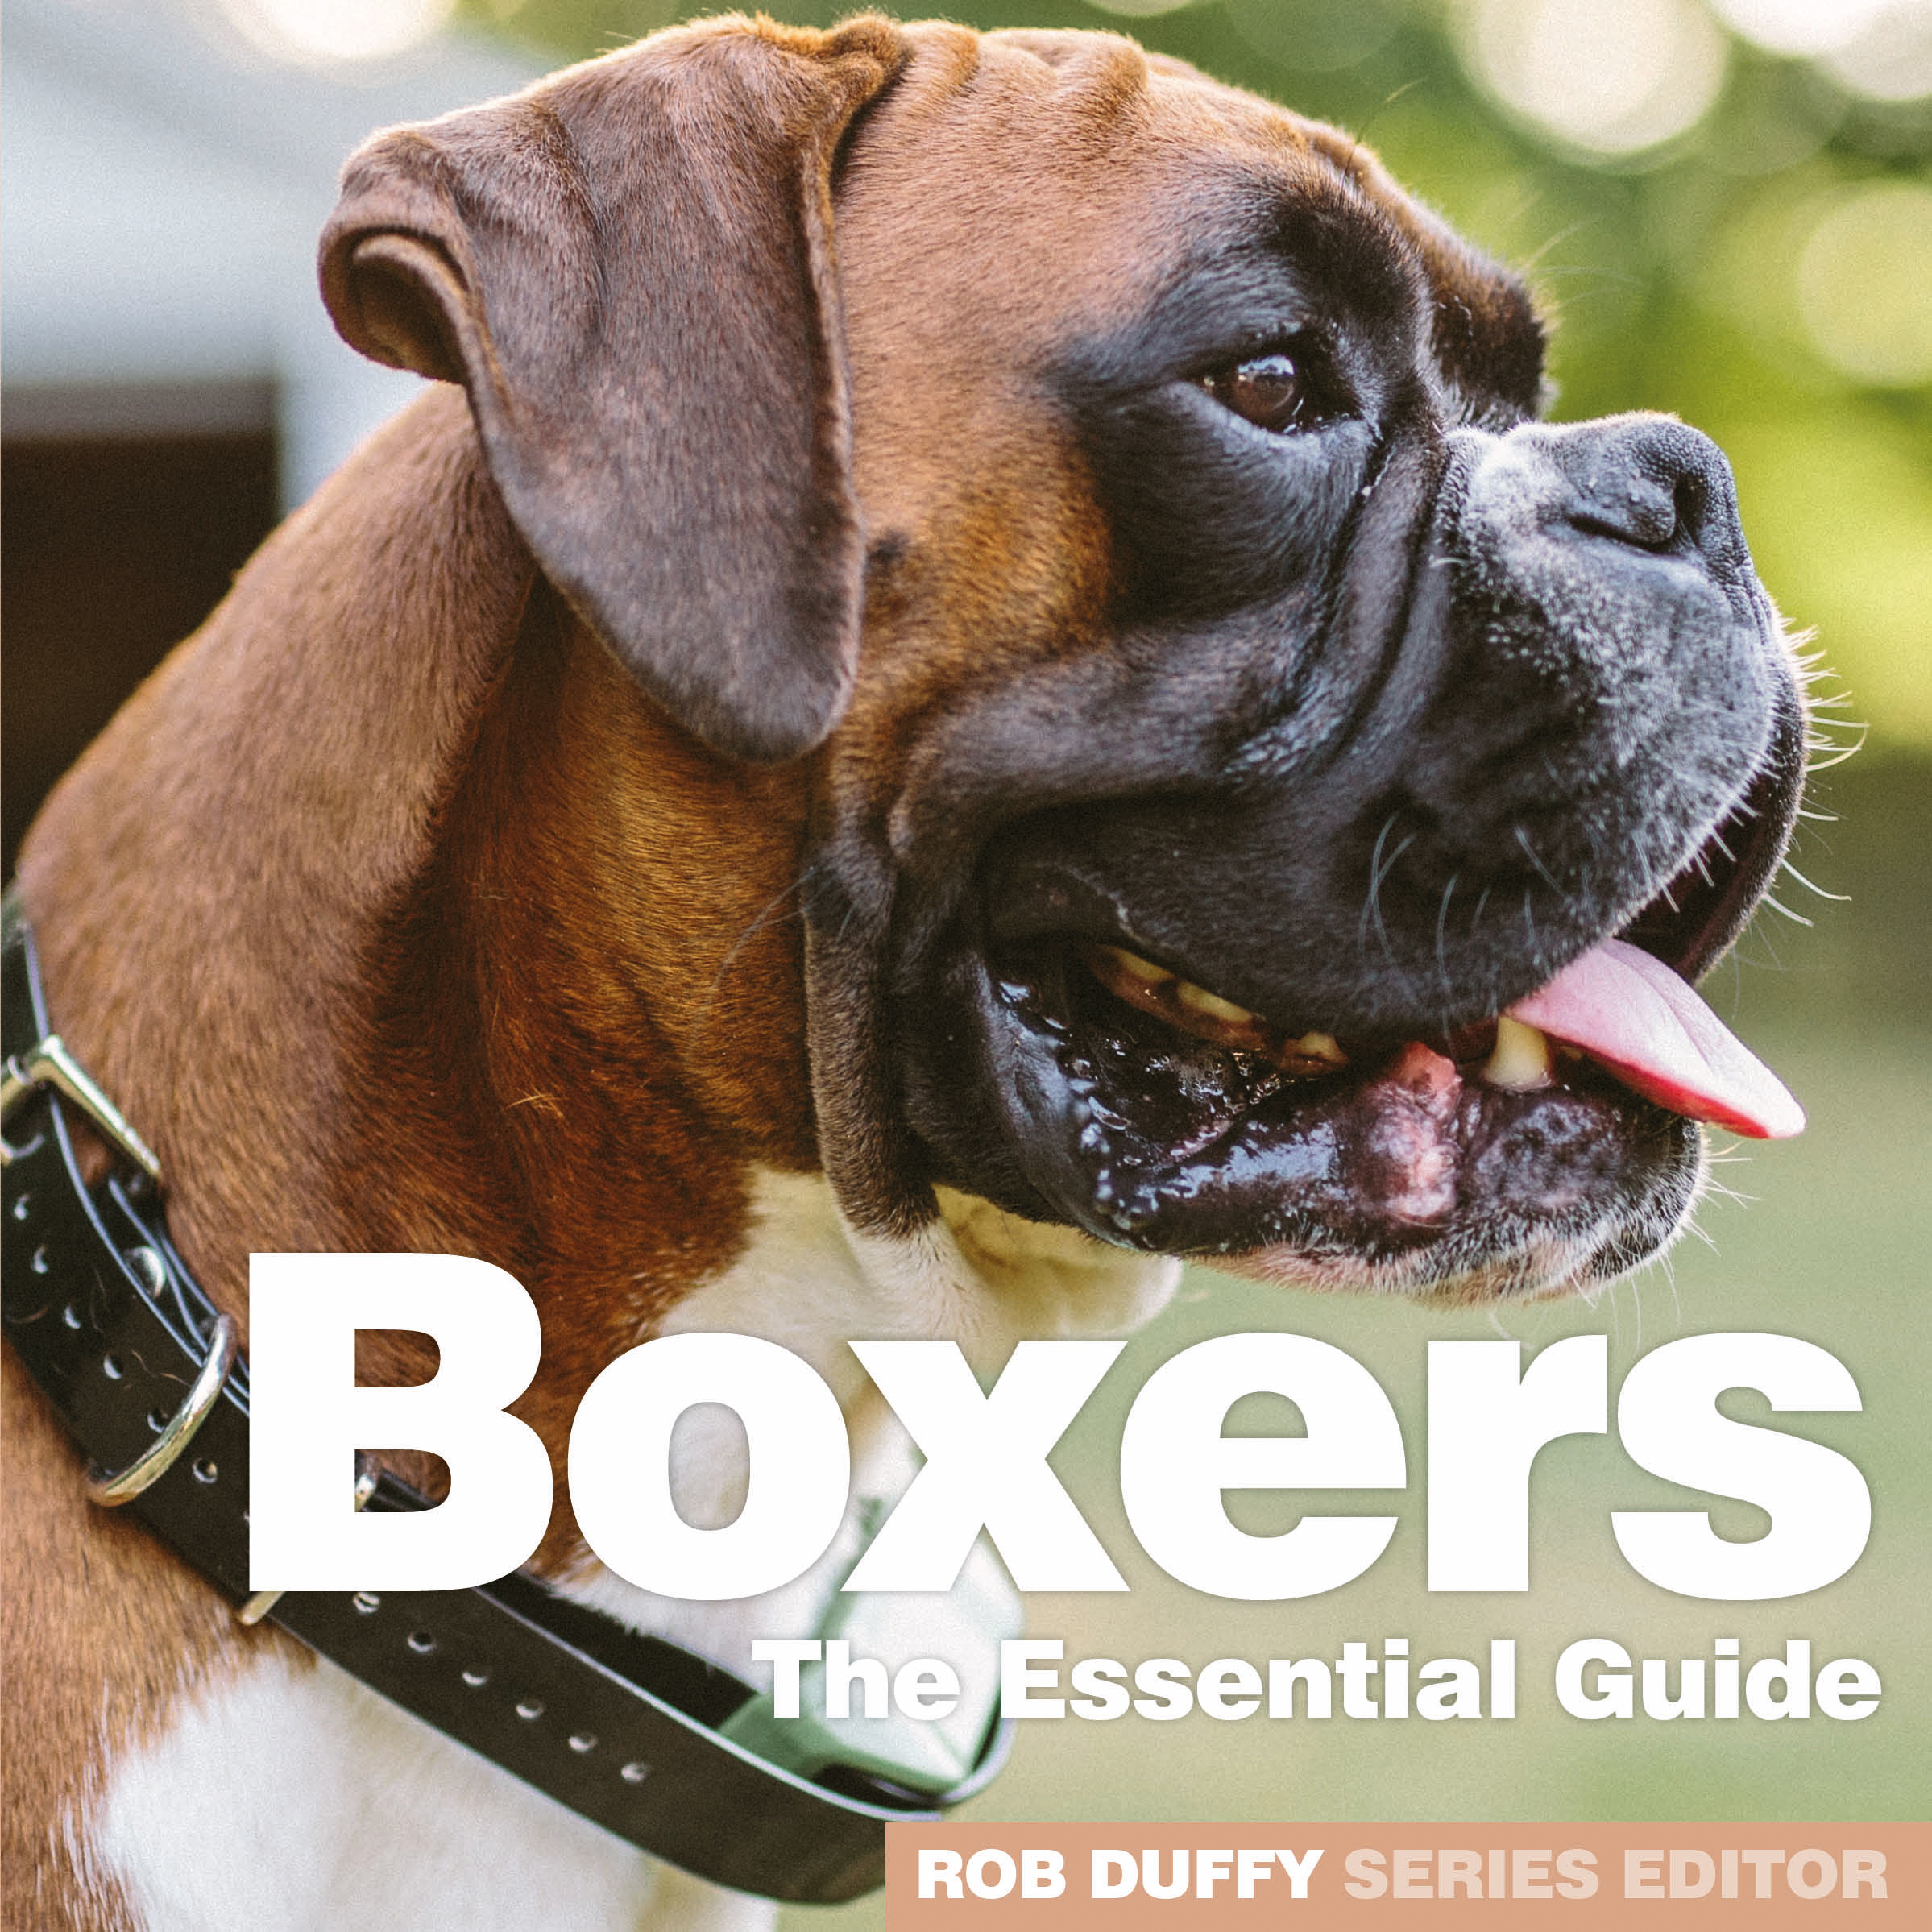 Boxers The Essential Guide